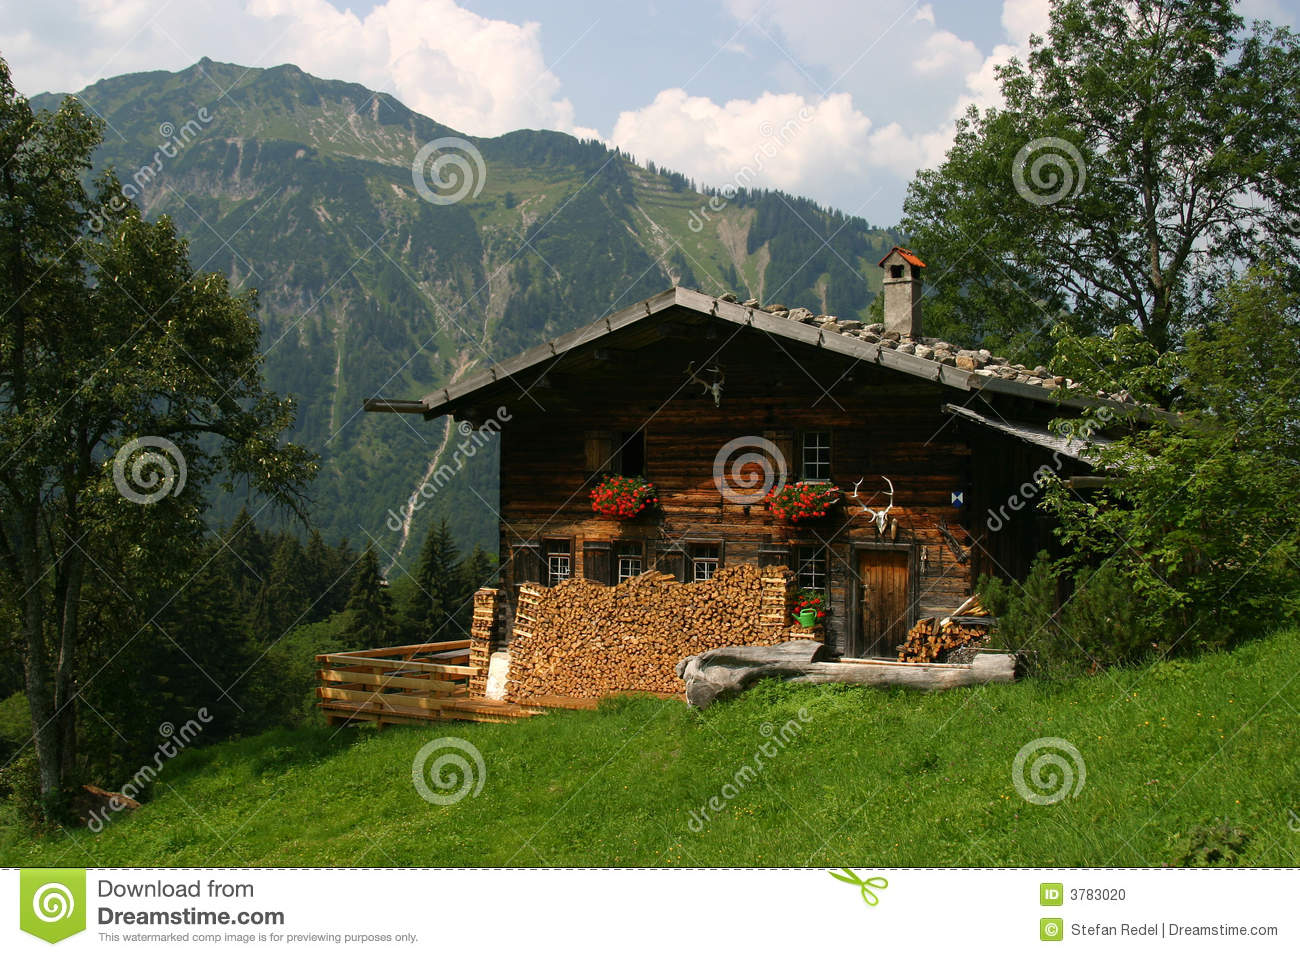 German House in the mountains